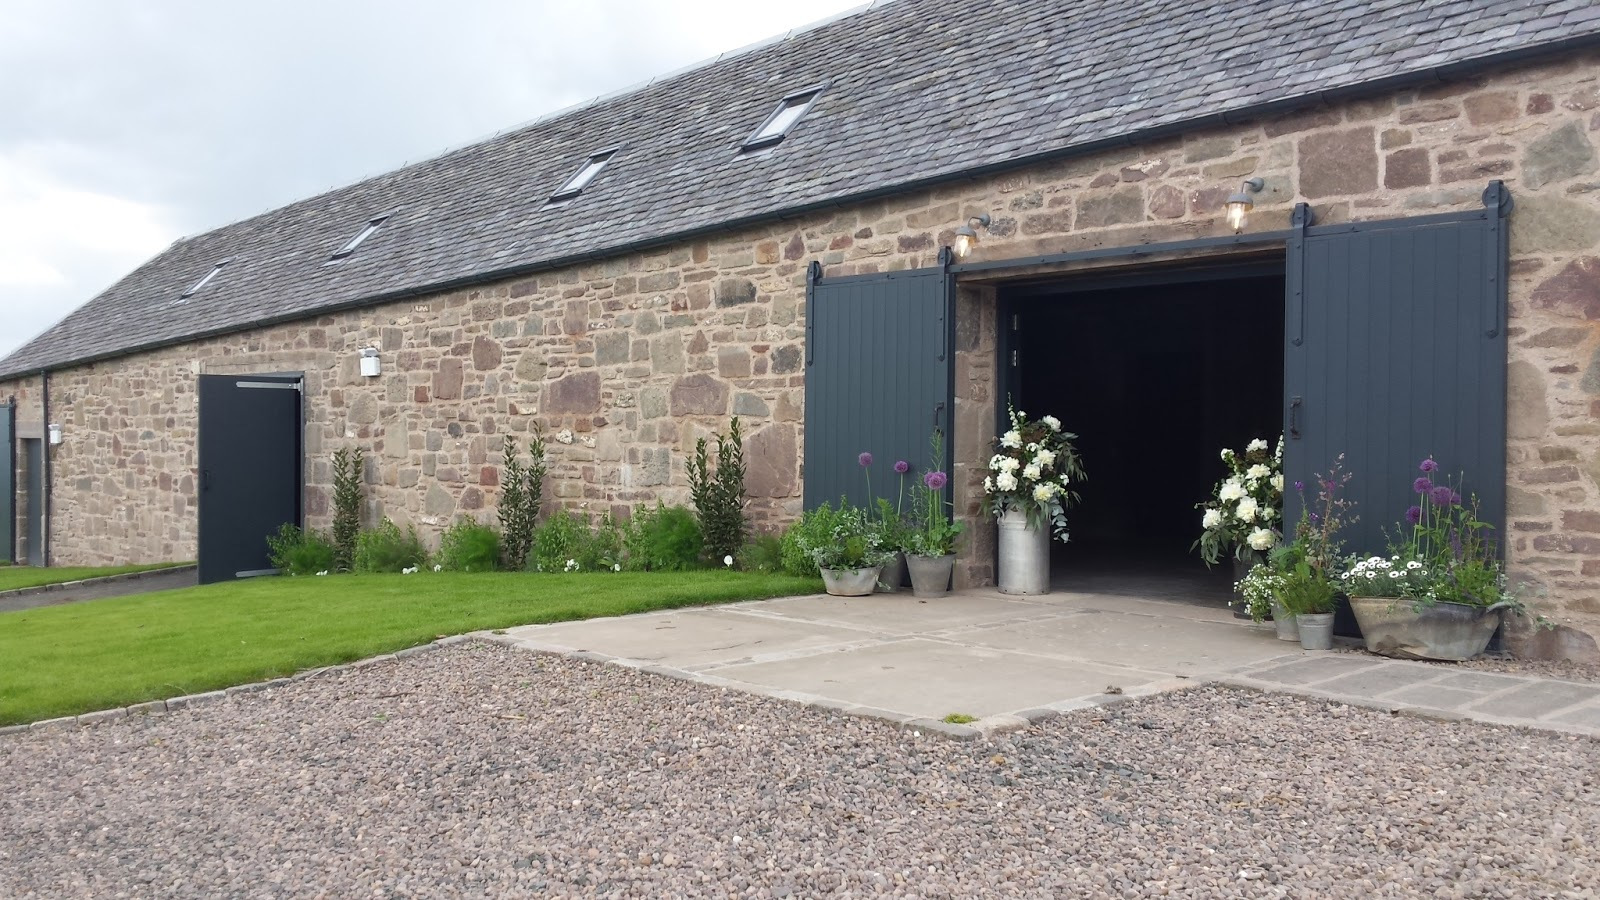 Humanist weddings in perthshire guardswell farm new events venue delighted to find myself at guardswell farm yesterday conducting the very first wedding to held at the new venue properly exciting solutioingenieria Choice Image